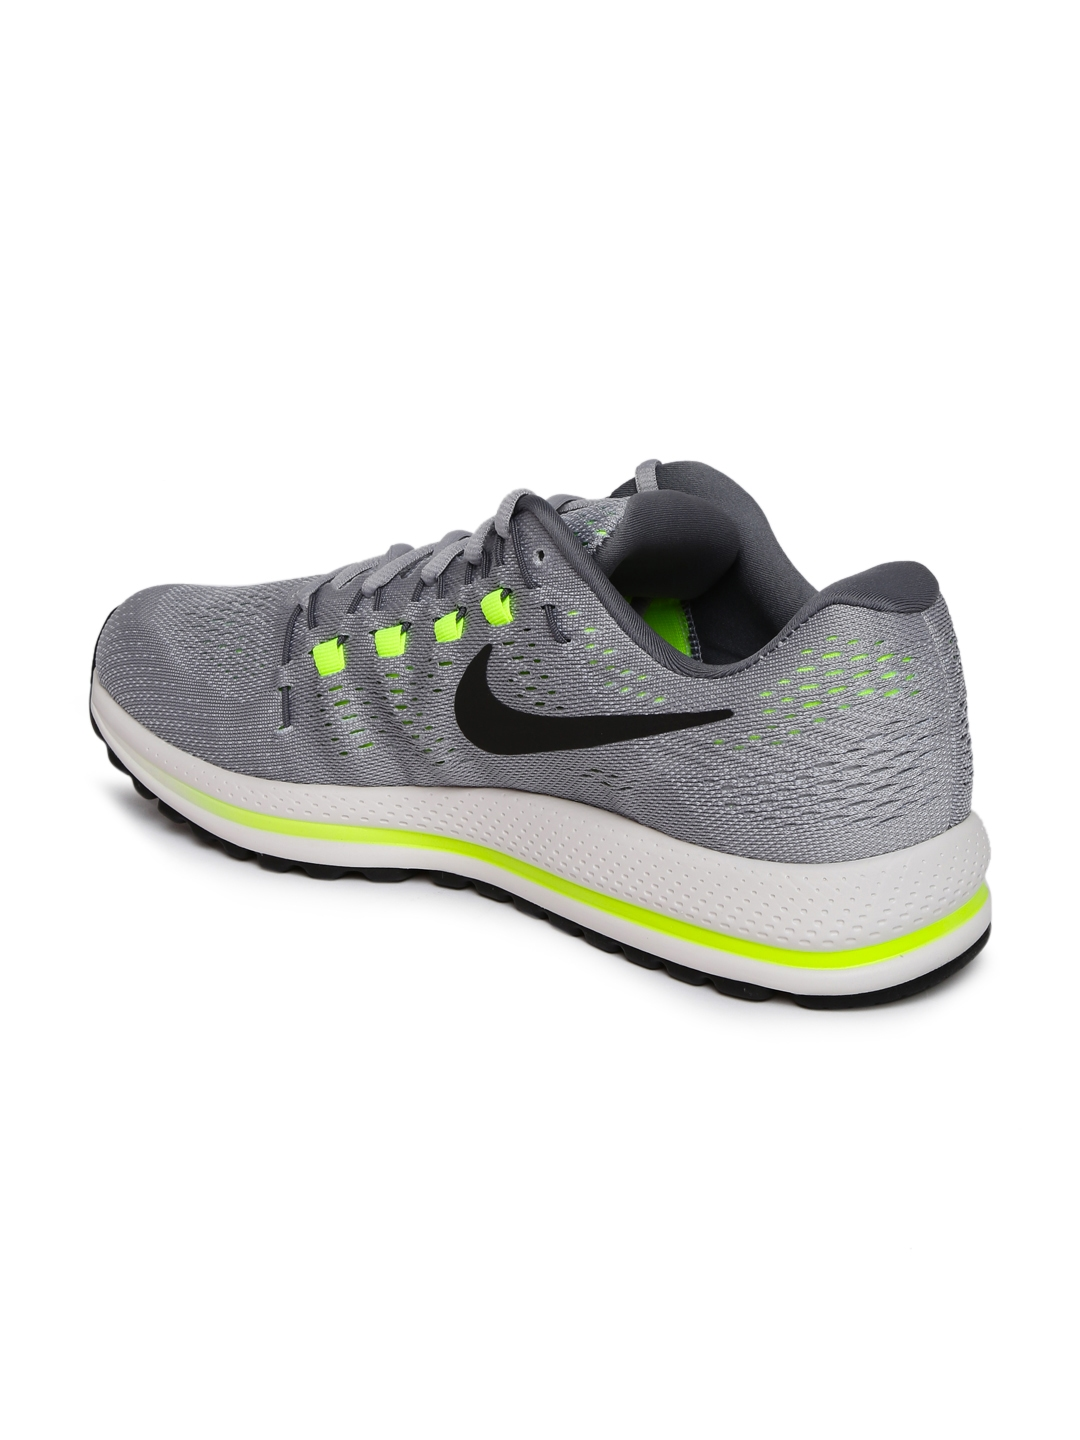 7fe5382d8e6b Buy Nike Men Grey Air Zoom Vomero 12 Running Shoes - Sports Shoes ...